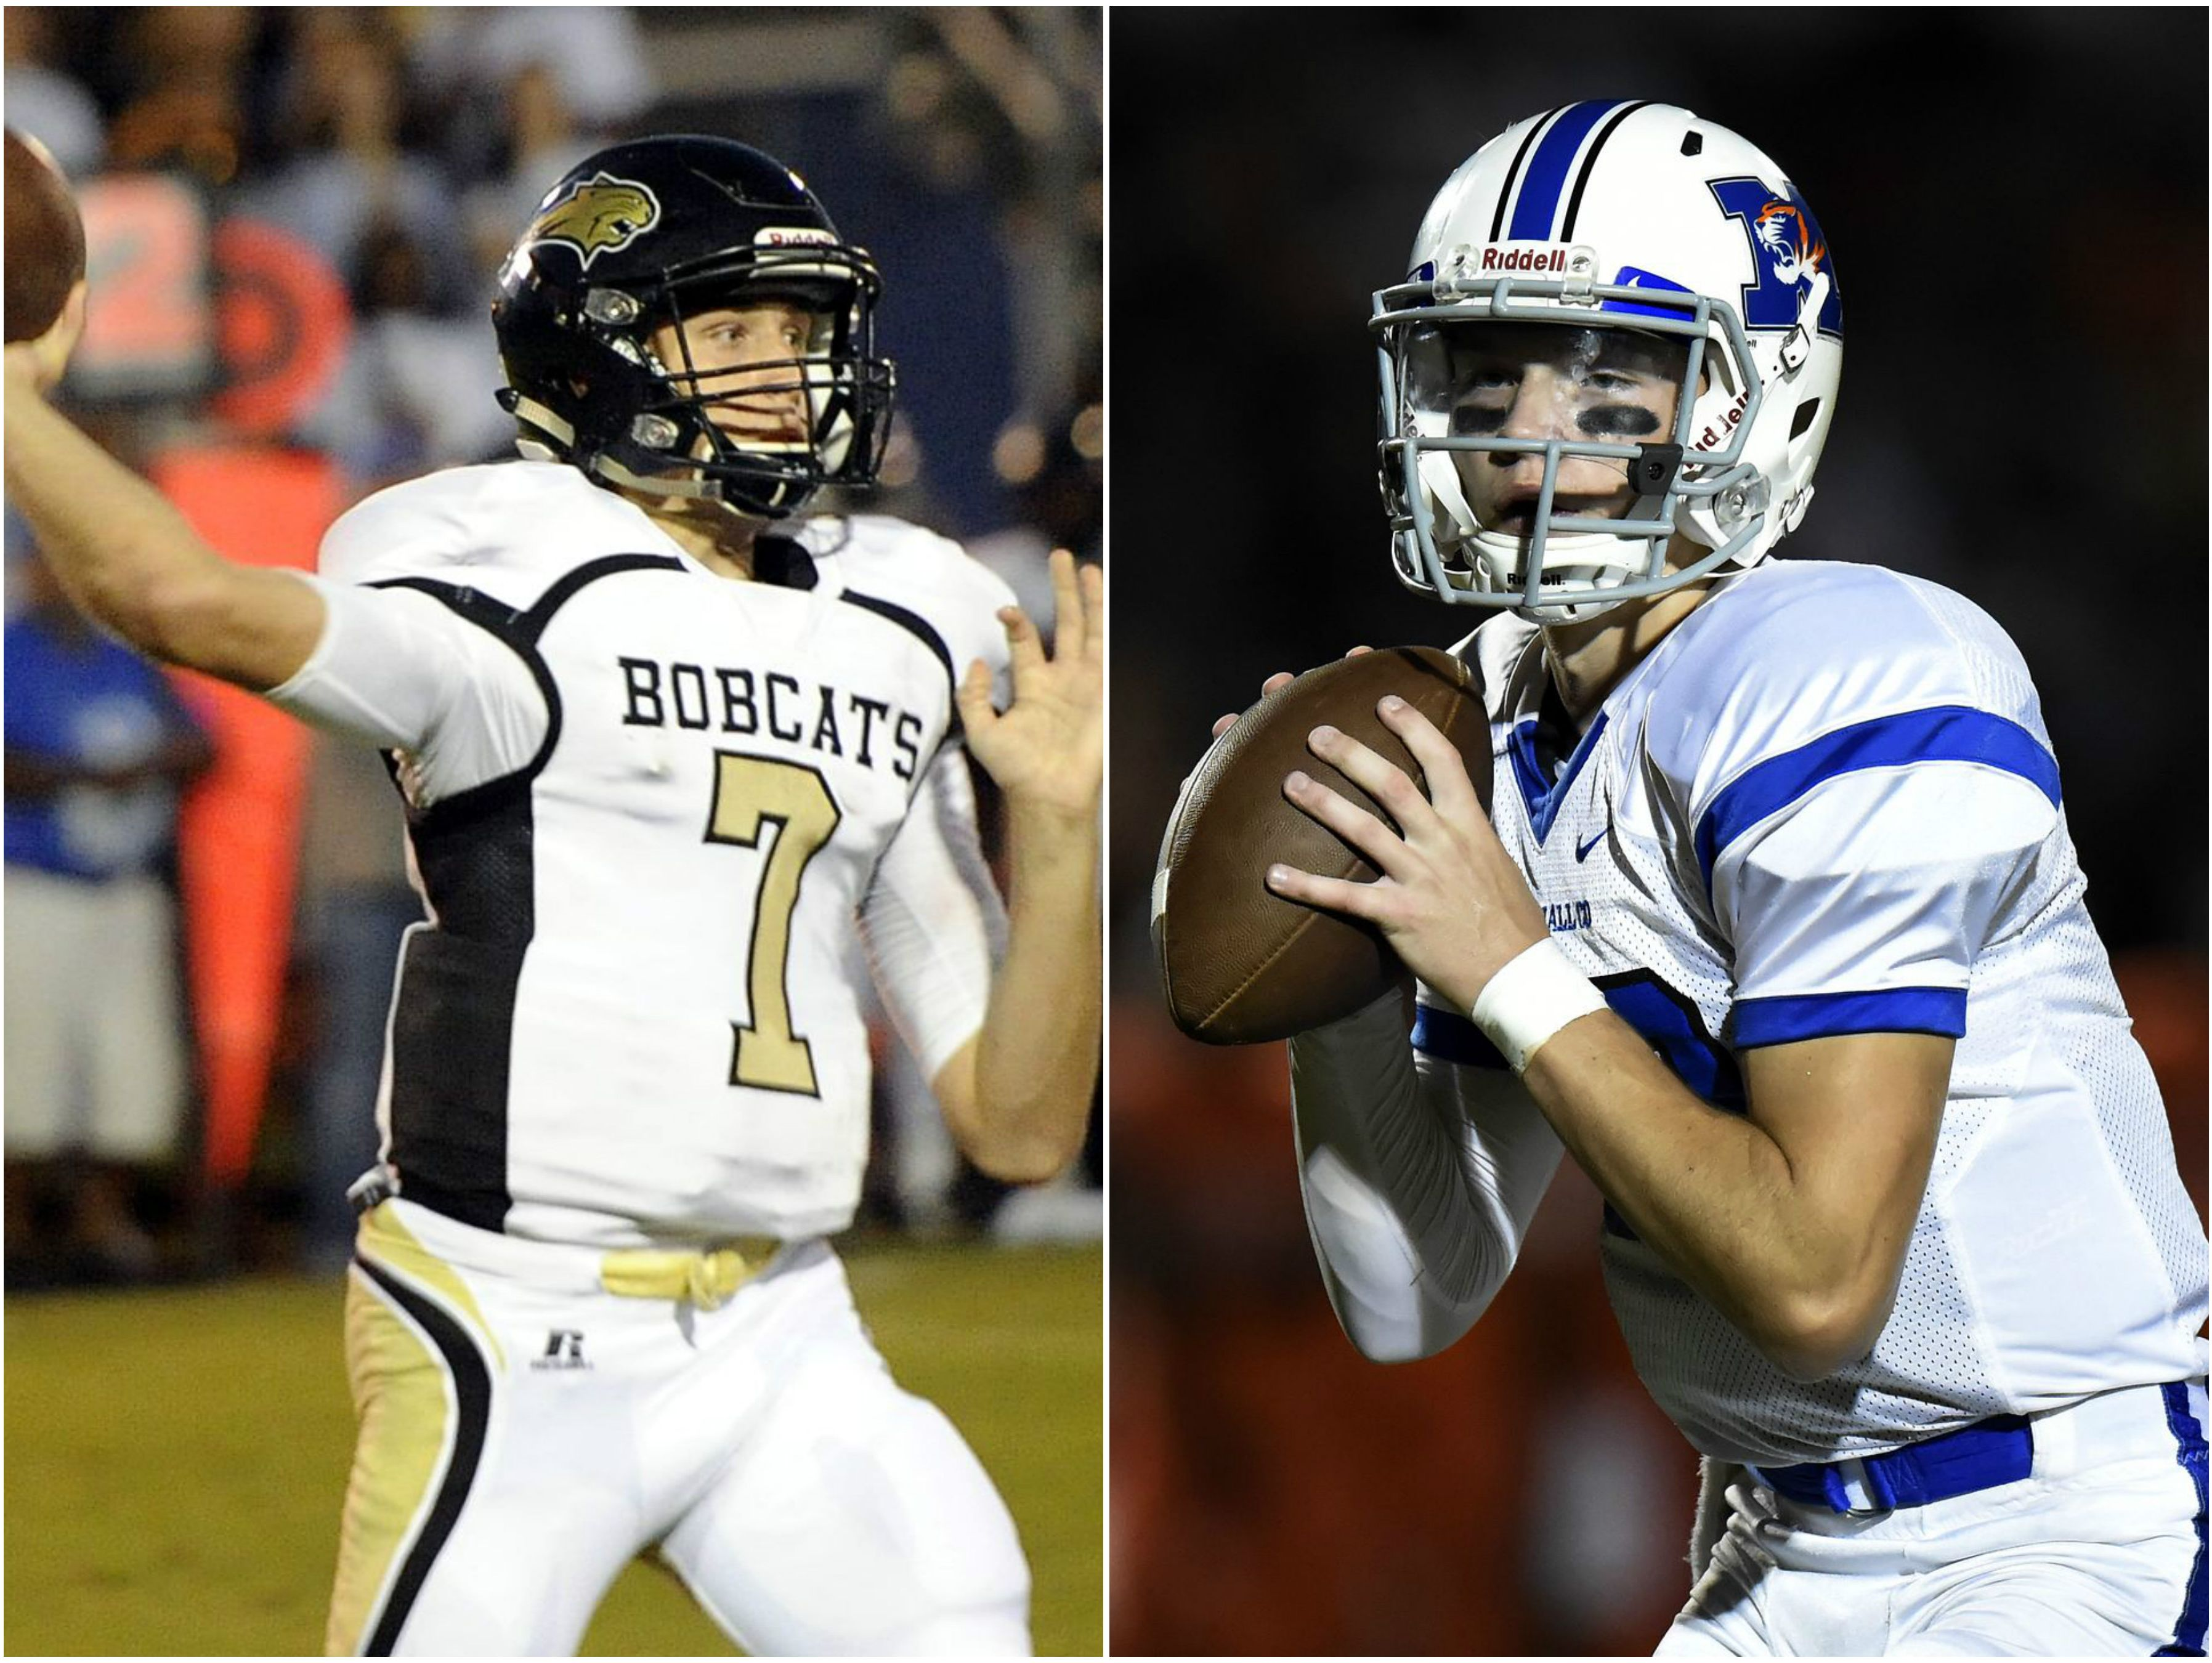 Giles County quarterback John Bachus (left) and Marshall County quarterback Bryce Wallace (right)